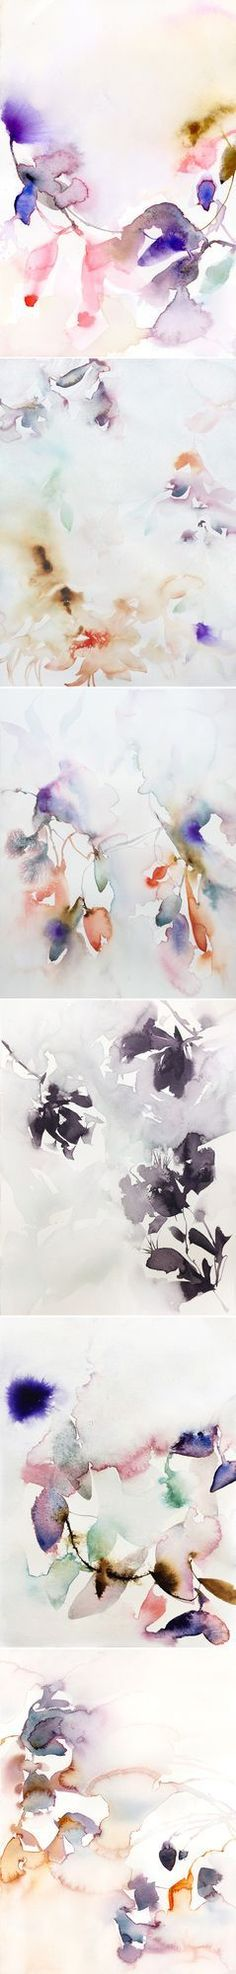 Oh. I am desperate for spring to arrive, but considering it's only February 9th I think I'm in for a bit of a wait… maybe I'll just stare at these gorgeous, washy, abstract floral watercolors for the